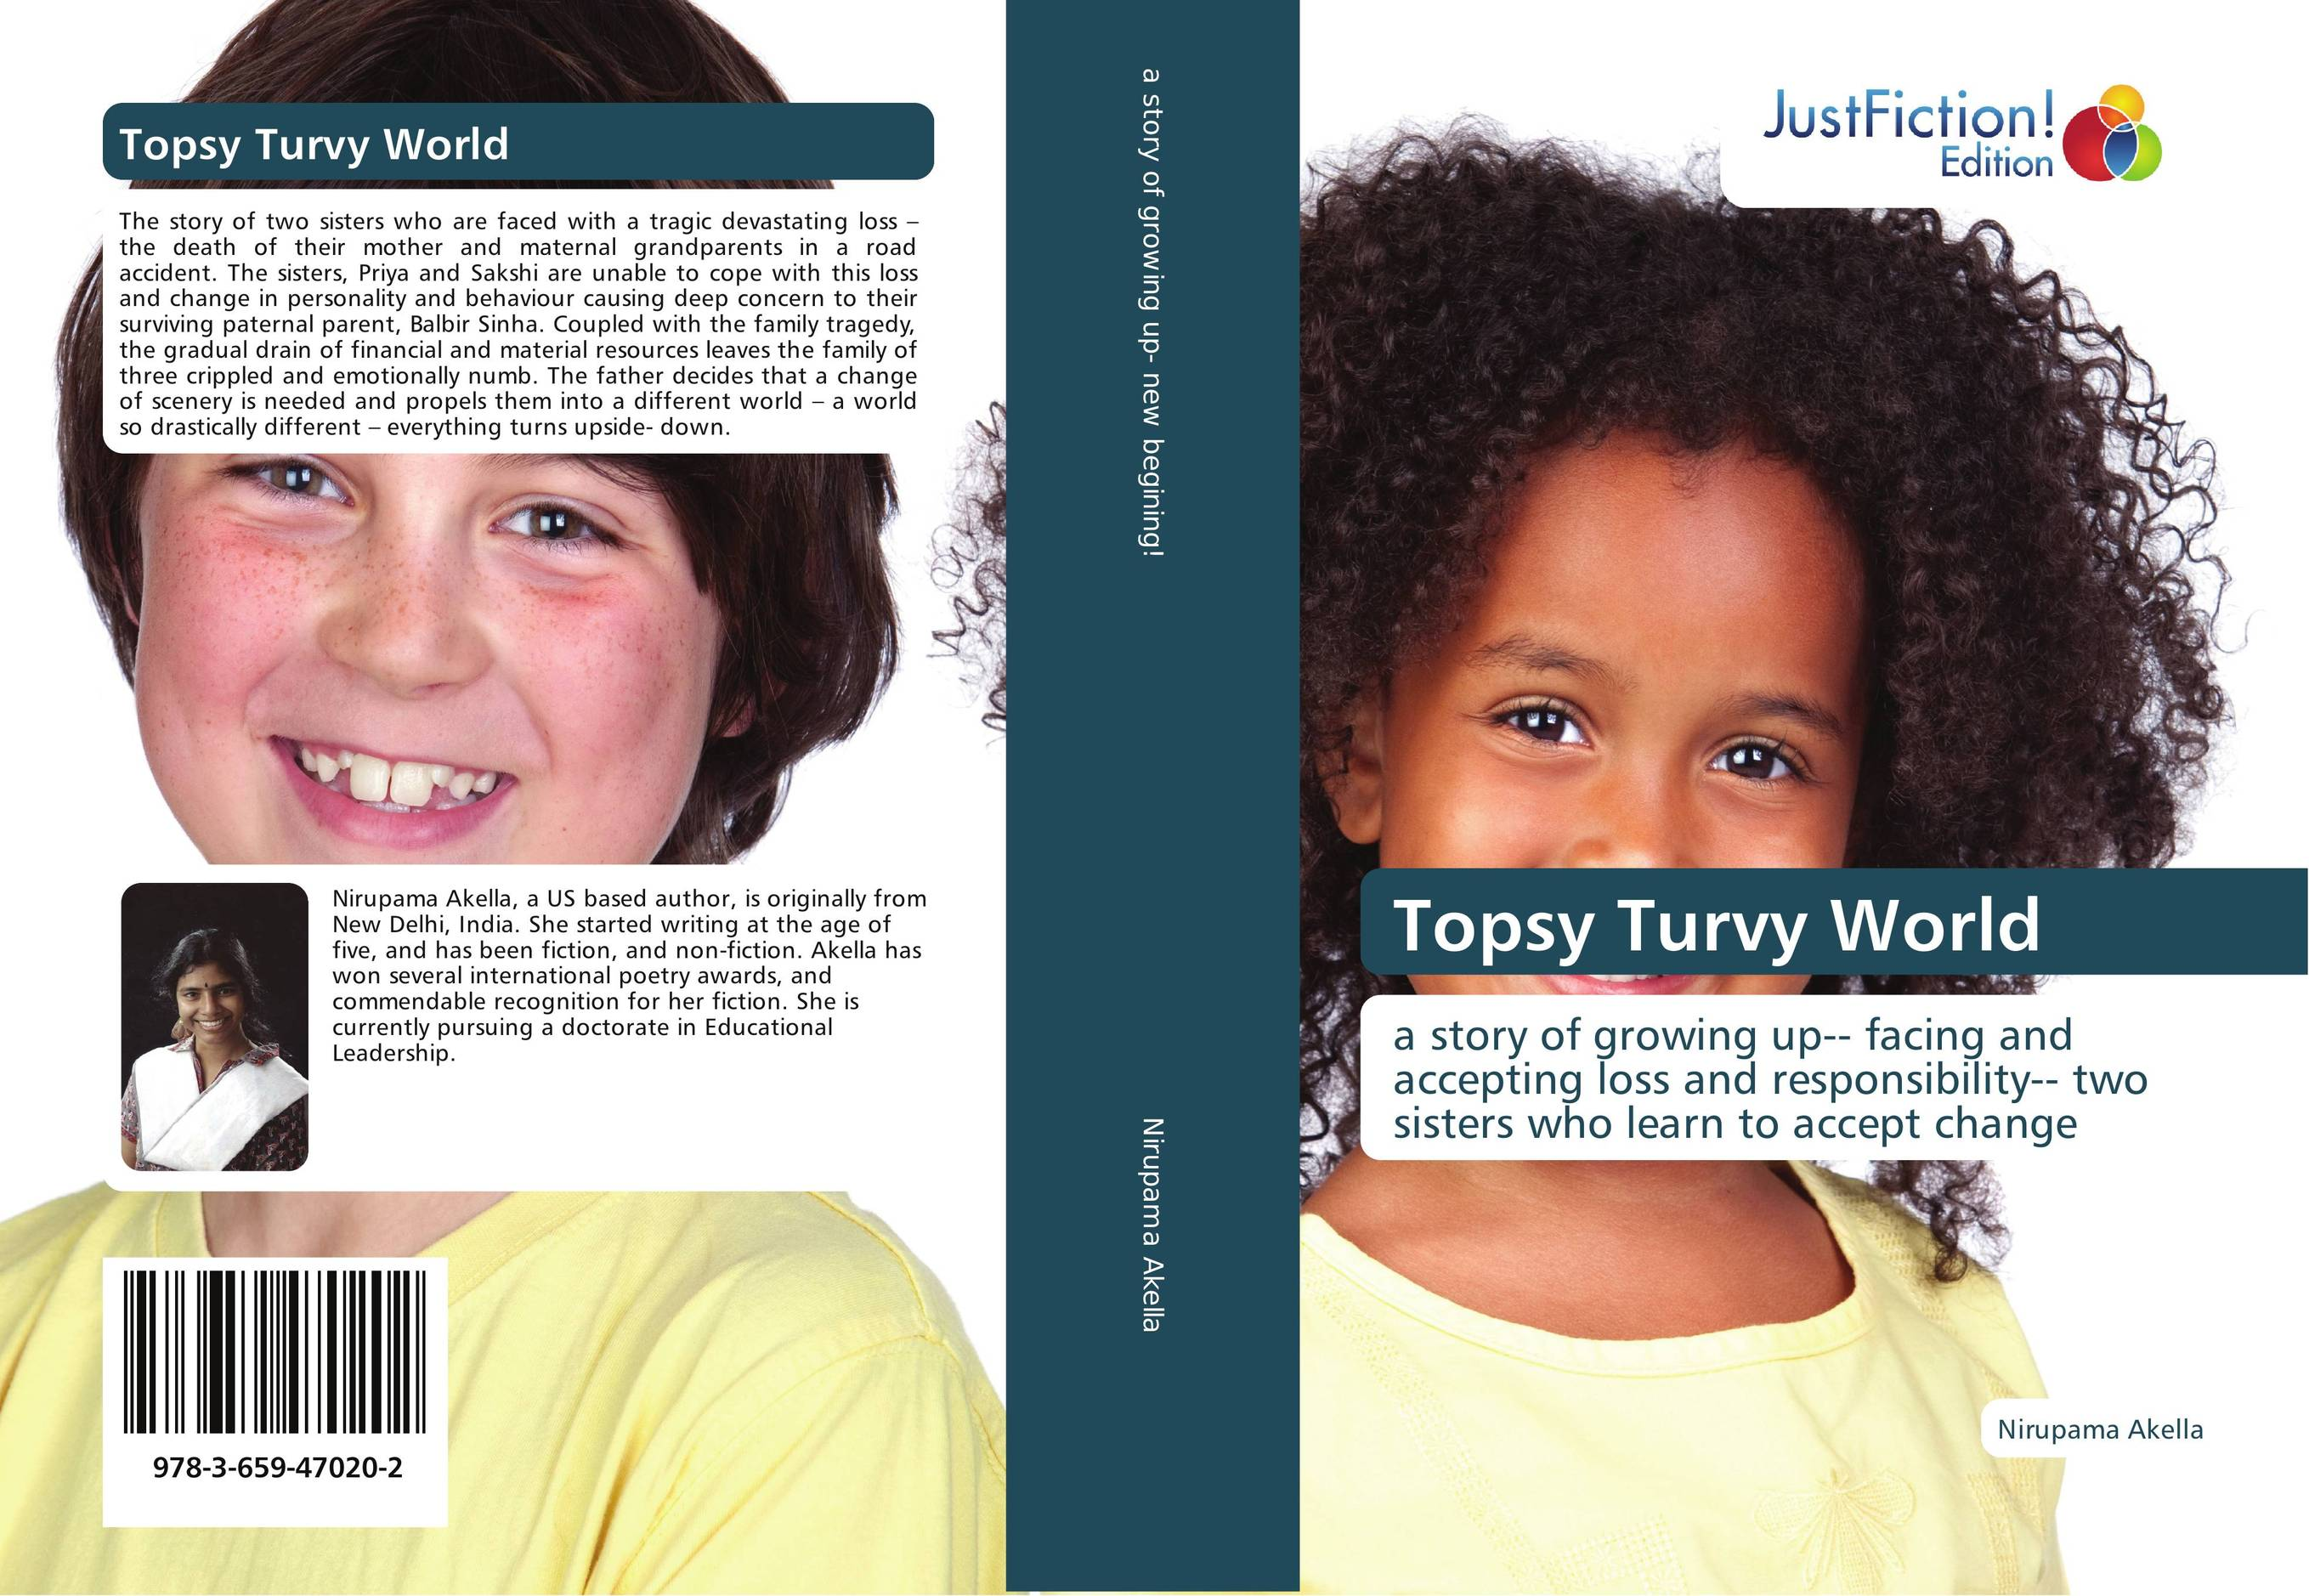 Topsy Turvy World cindy m george stepfamilies surviving the death of a biological parent